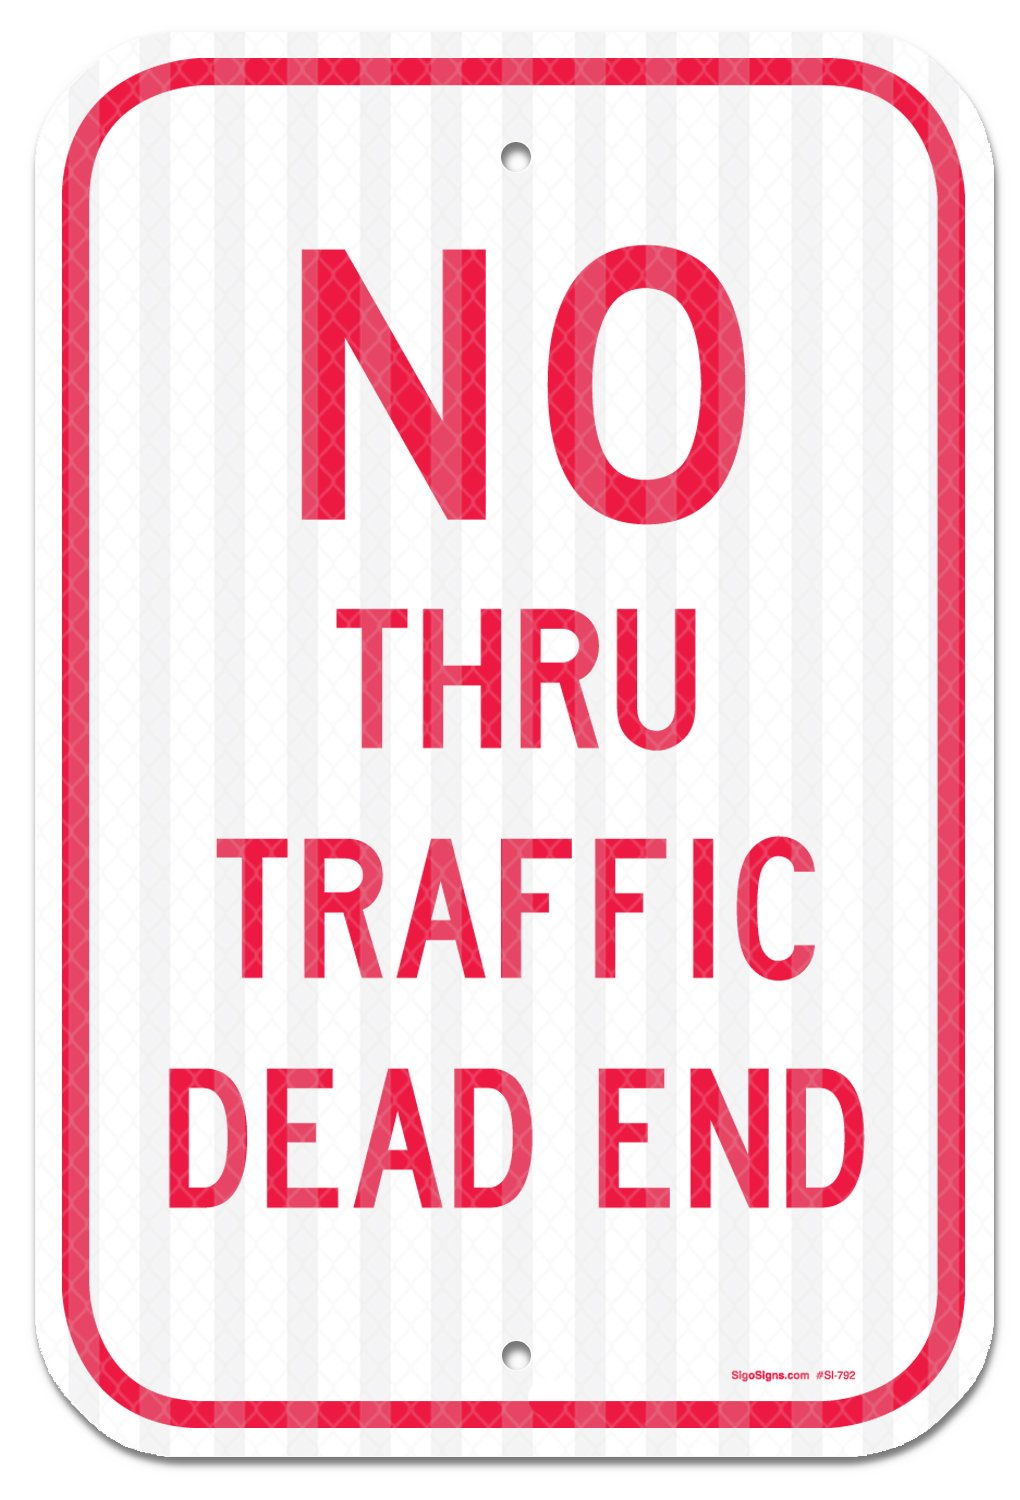 No Thru Traffic Dead End Sign, Federal 12''x18'' 3M Prismatic Engineer Grade Reflective Aluminum, For Indoor or Outdoor Use - By SIGO SIGNS